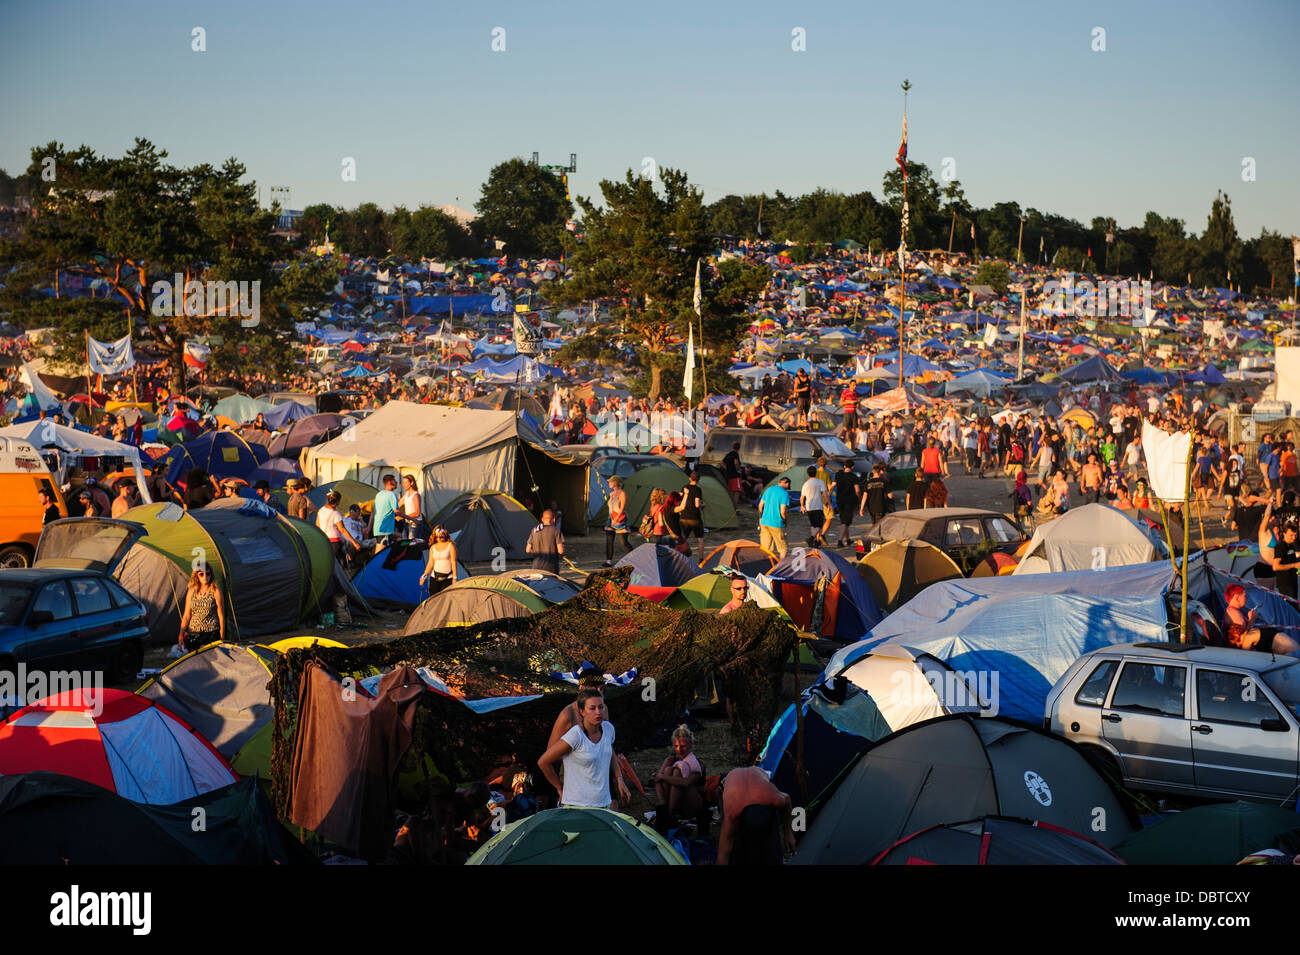 General view of the main campsite at the Przystanek Woodstock music festival, Kostrzyn, Poland. - Stock Image